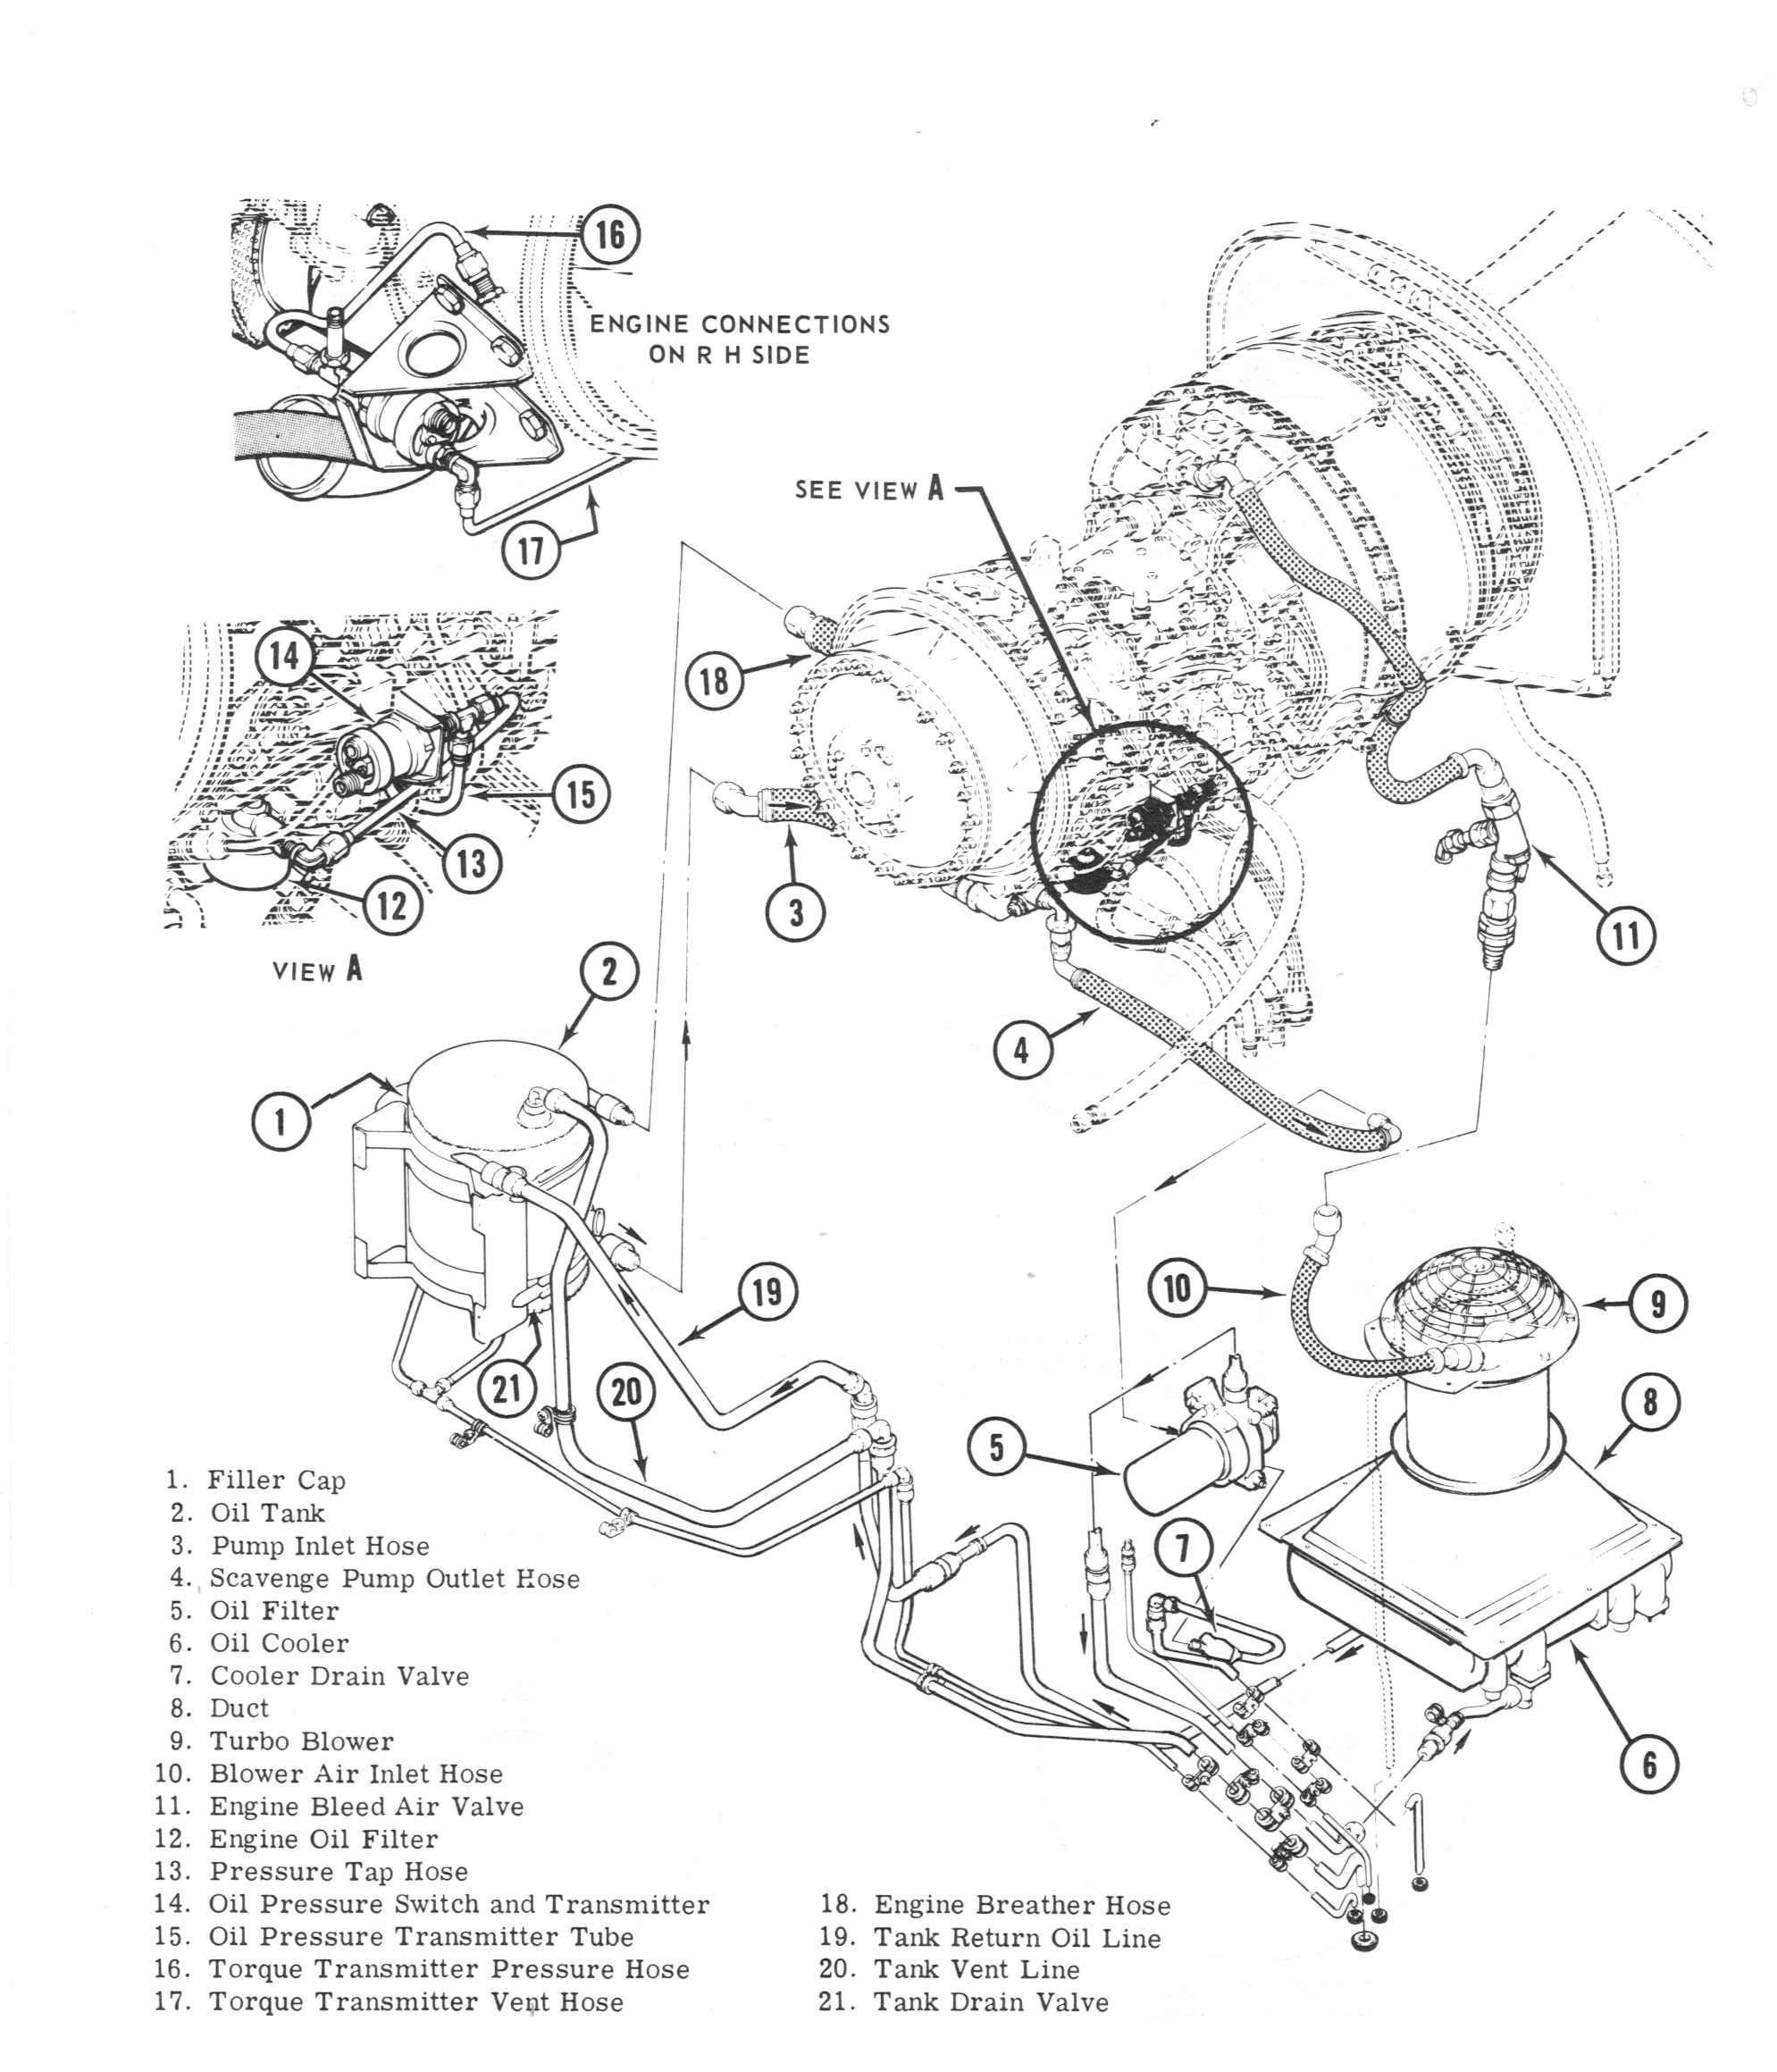 Bell Model 205a 1 Image Downloads External Schematic This Is The Of Connections Engine Orientation Diagram T5313b Exploded View Helicopter Cargo Suspension Hook Fire Extinguisher Installation